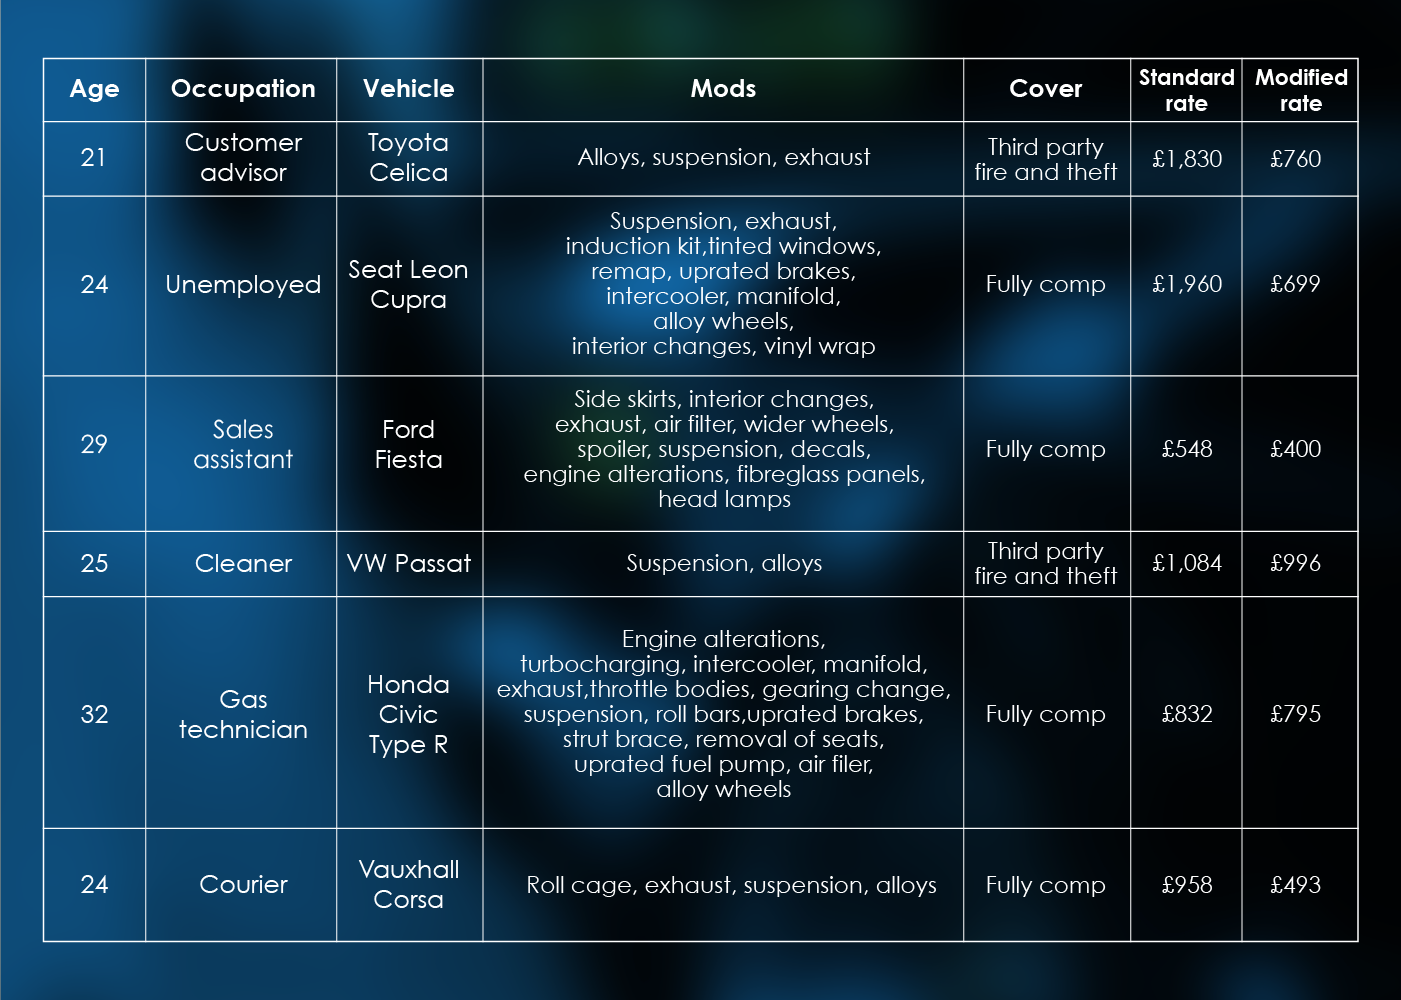 A table of information regarding standard versus modified car insurance prices.